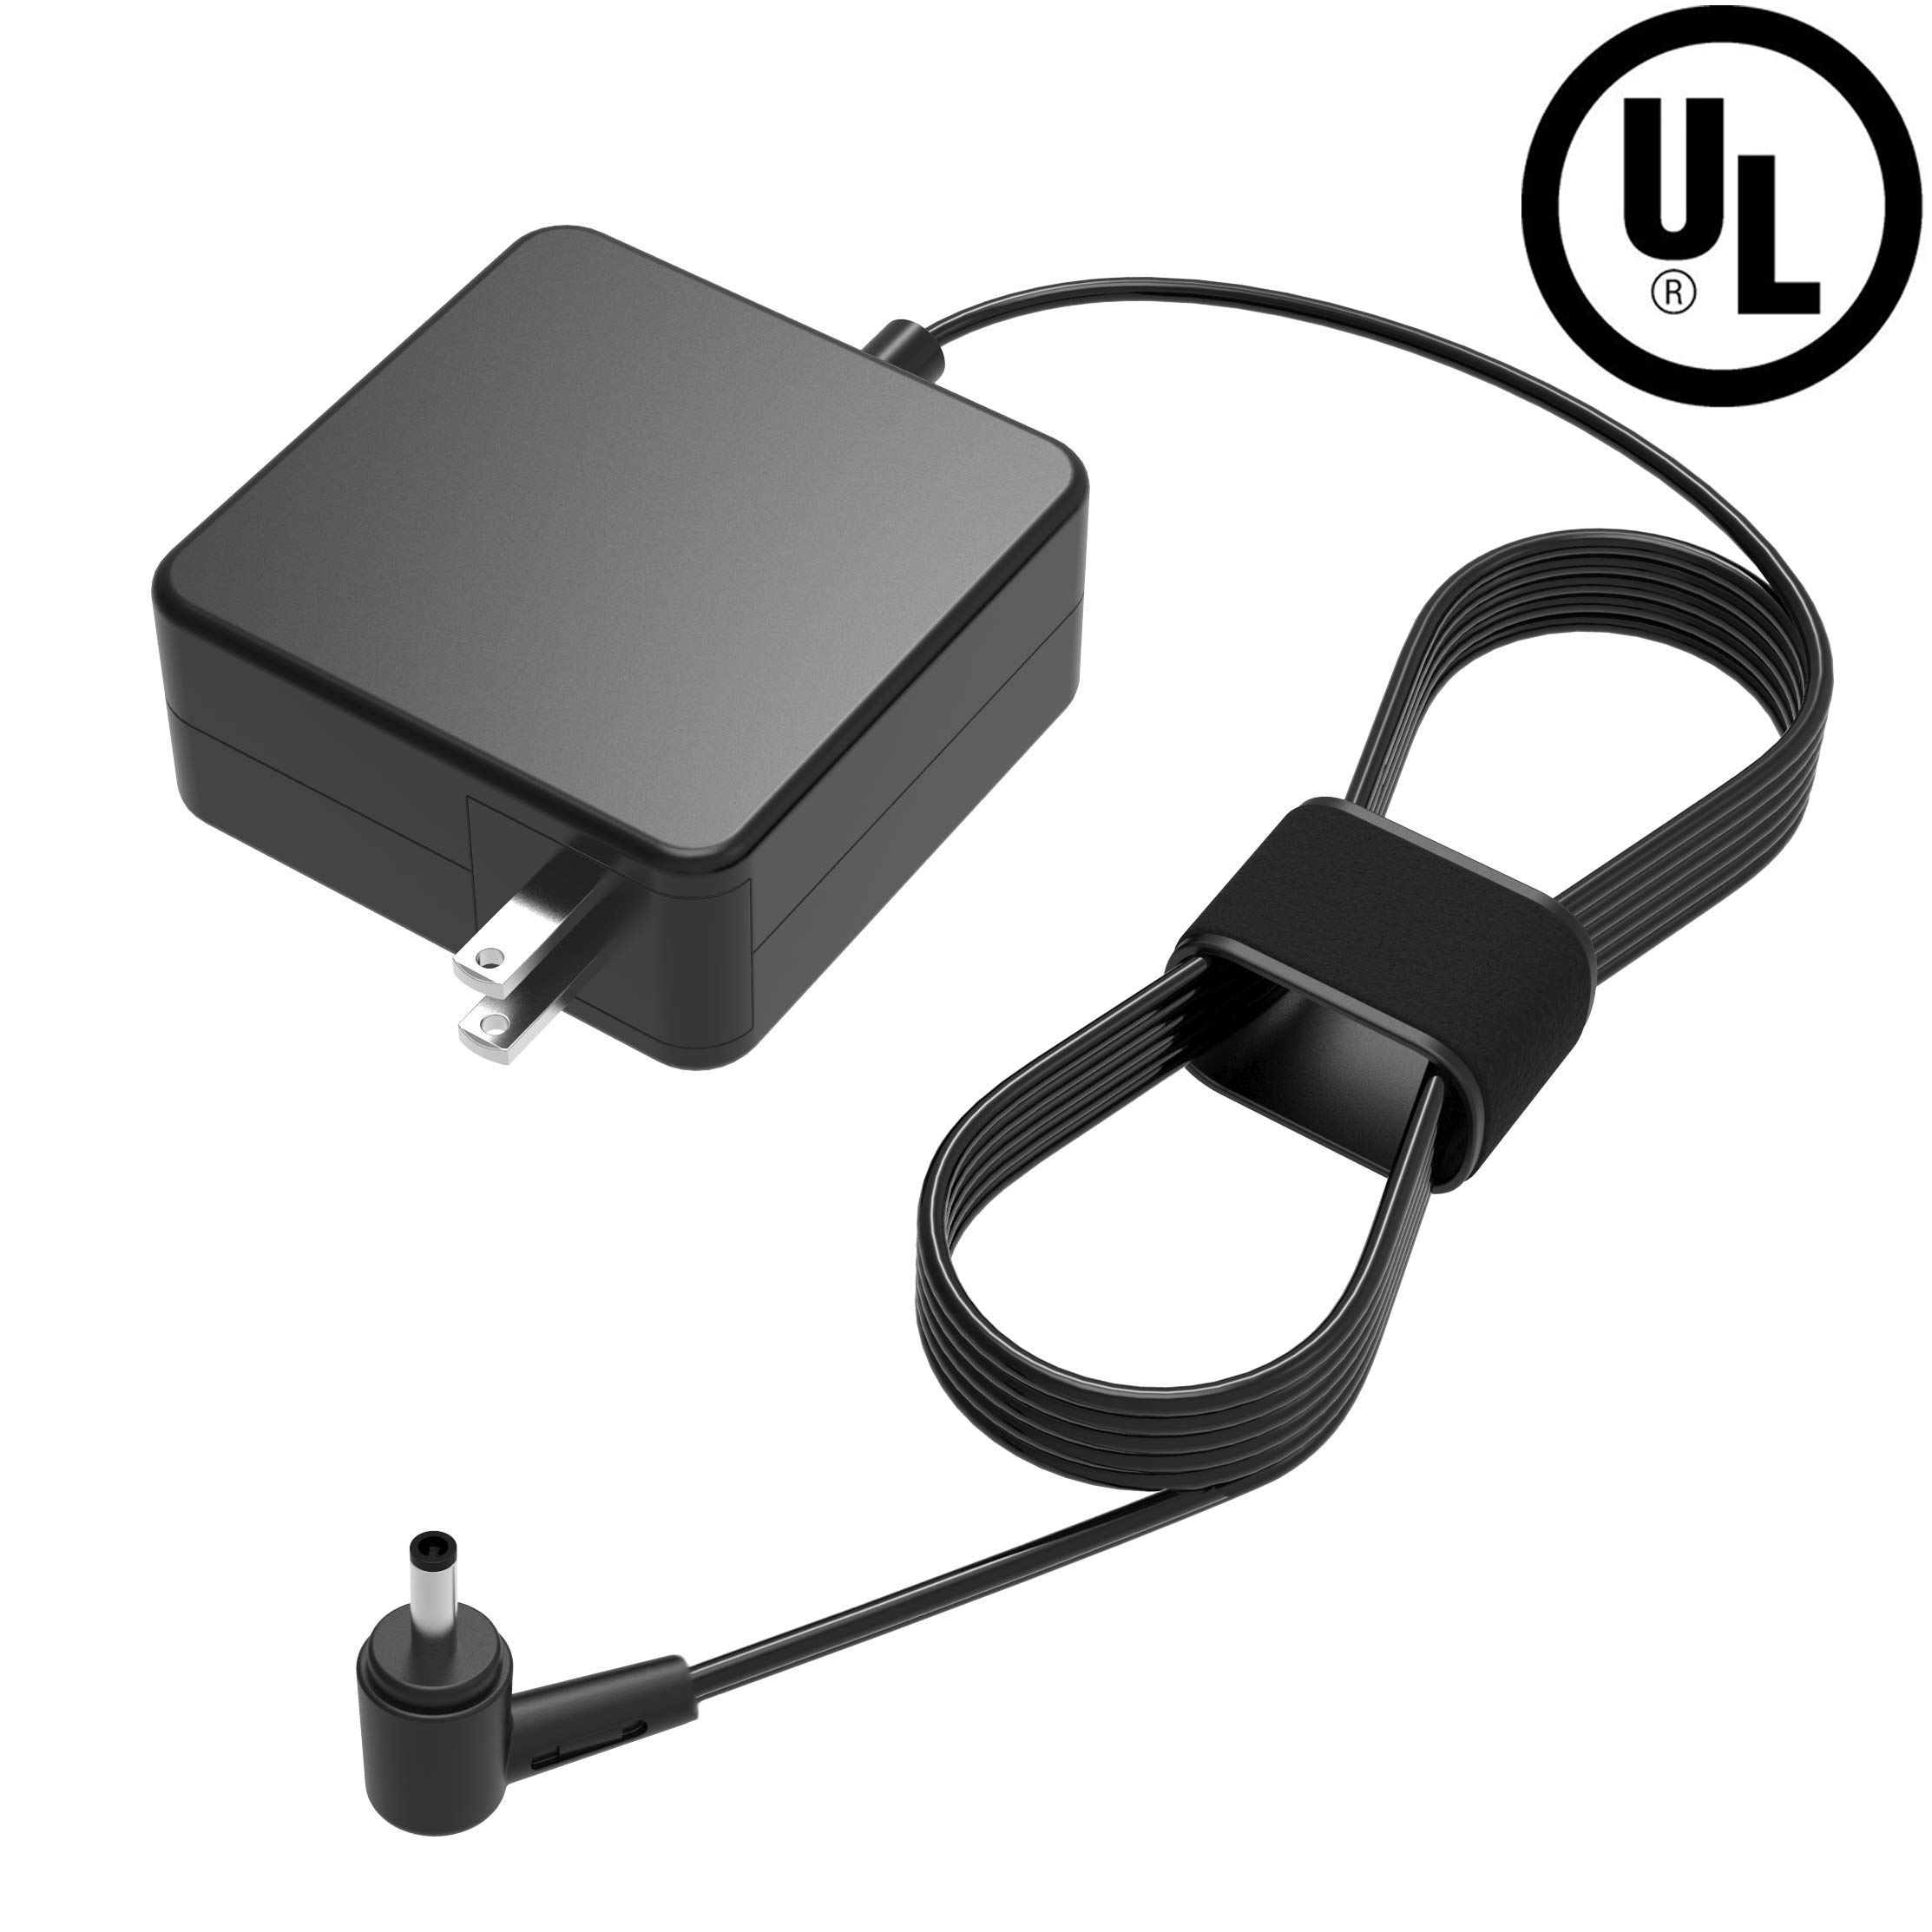 UL Listed AC Charger Compatible with Asus UX21A UX31A UX31LA UX31L UX31A-DH71 UX31A-BHI5T11 UX32A Taichi 21 Taichi 31 Taichi 21-DH51 Taichi 21-DH71 Taichi 21-UH51 Laptop Power Supply Adapter Cord